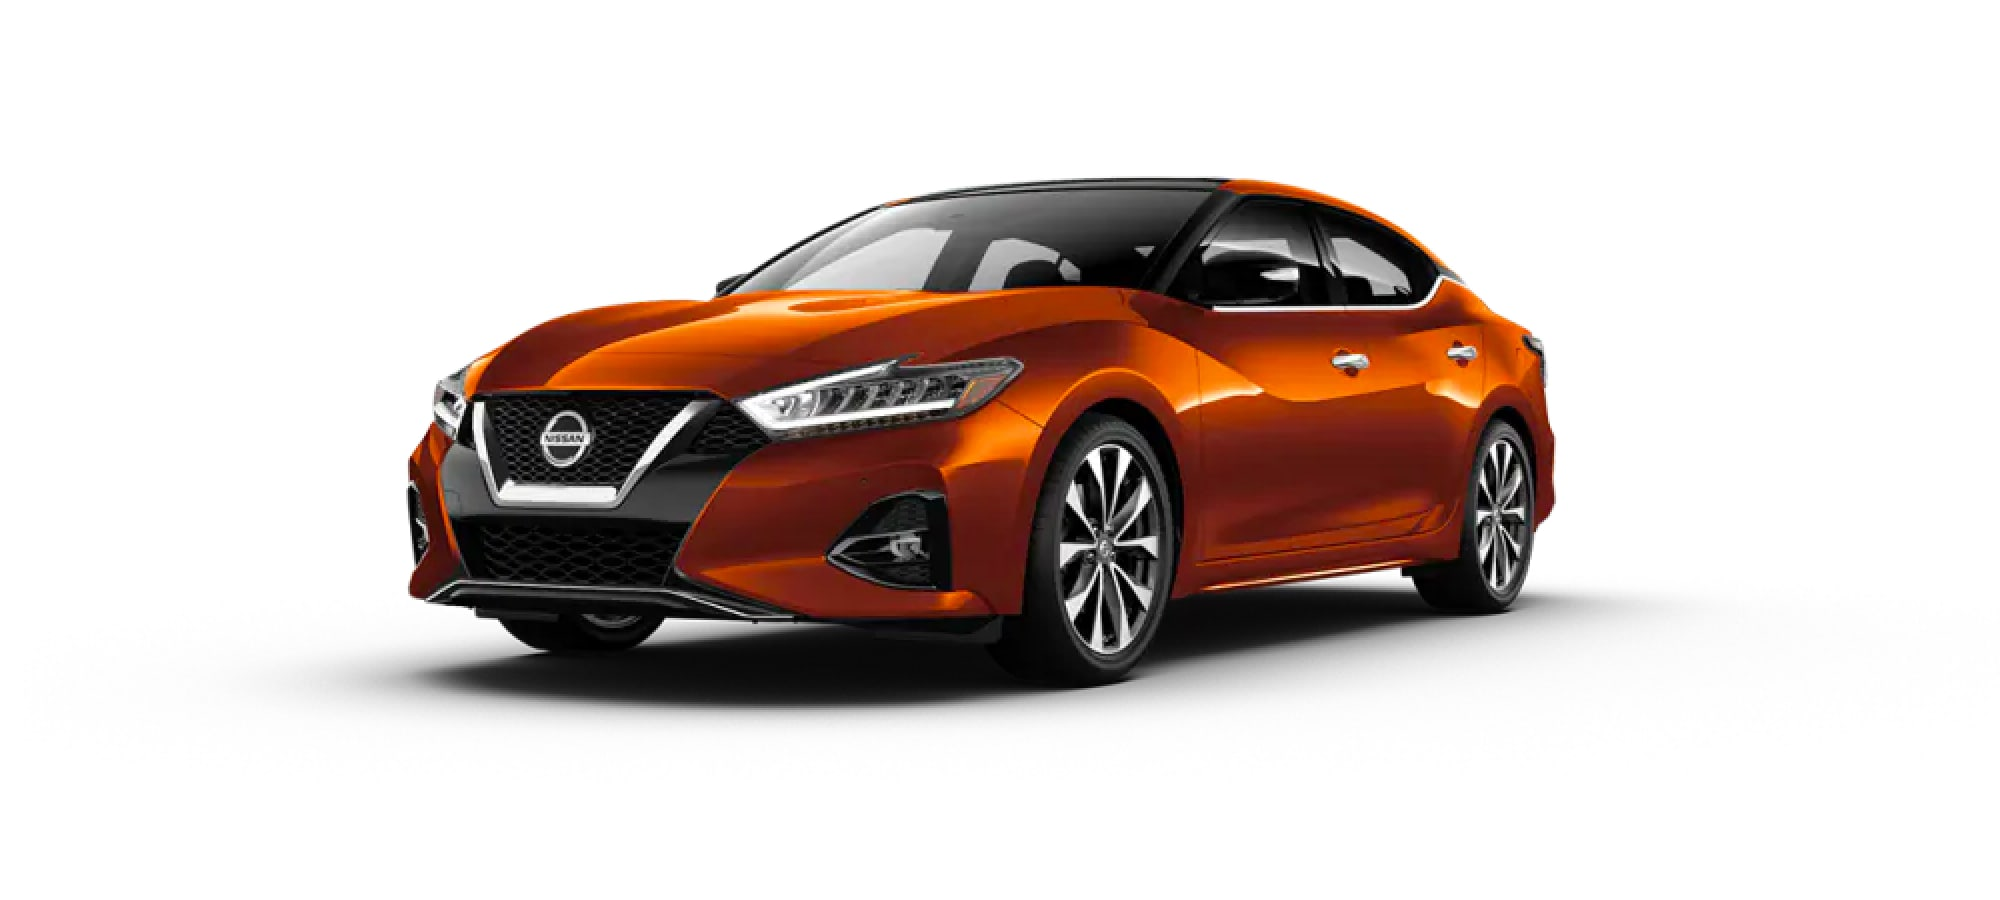 2020 Nissan Maxima in Monarch Orange Metallic